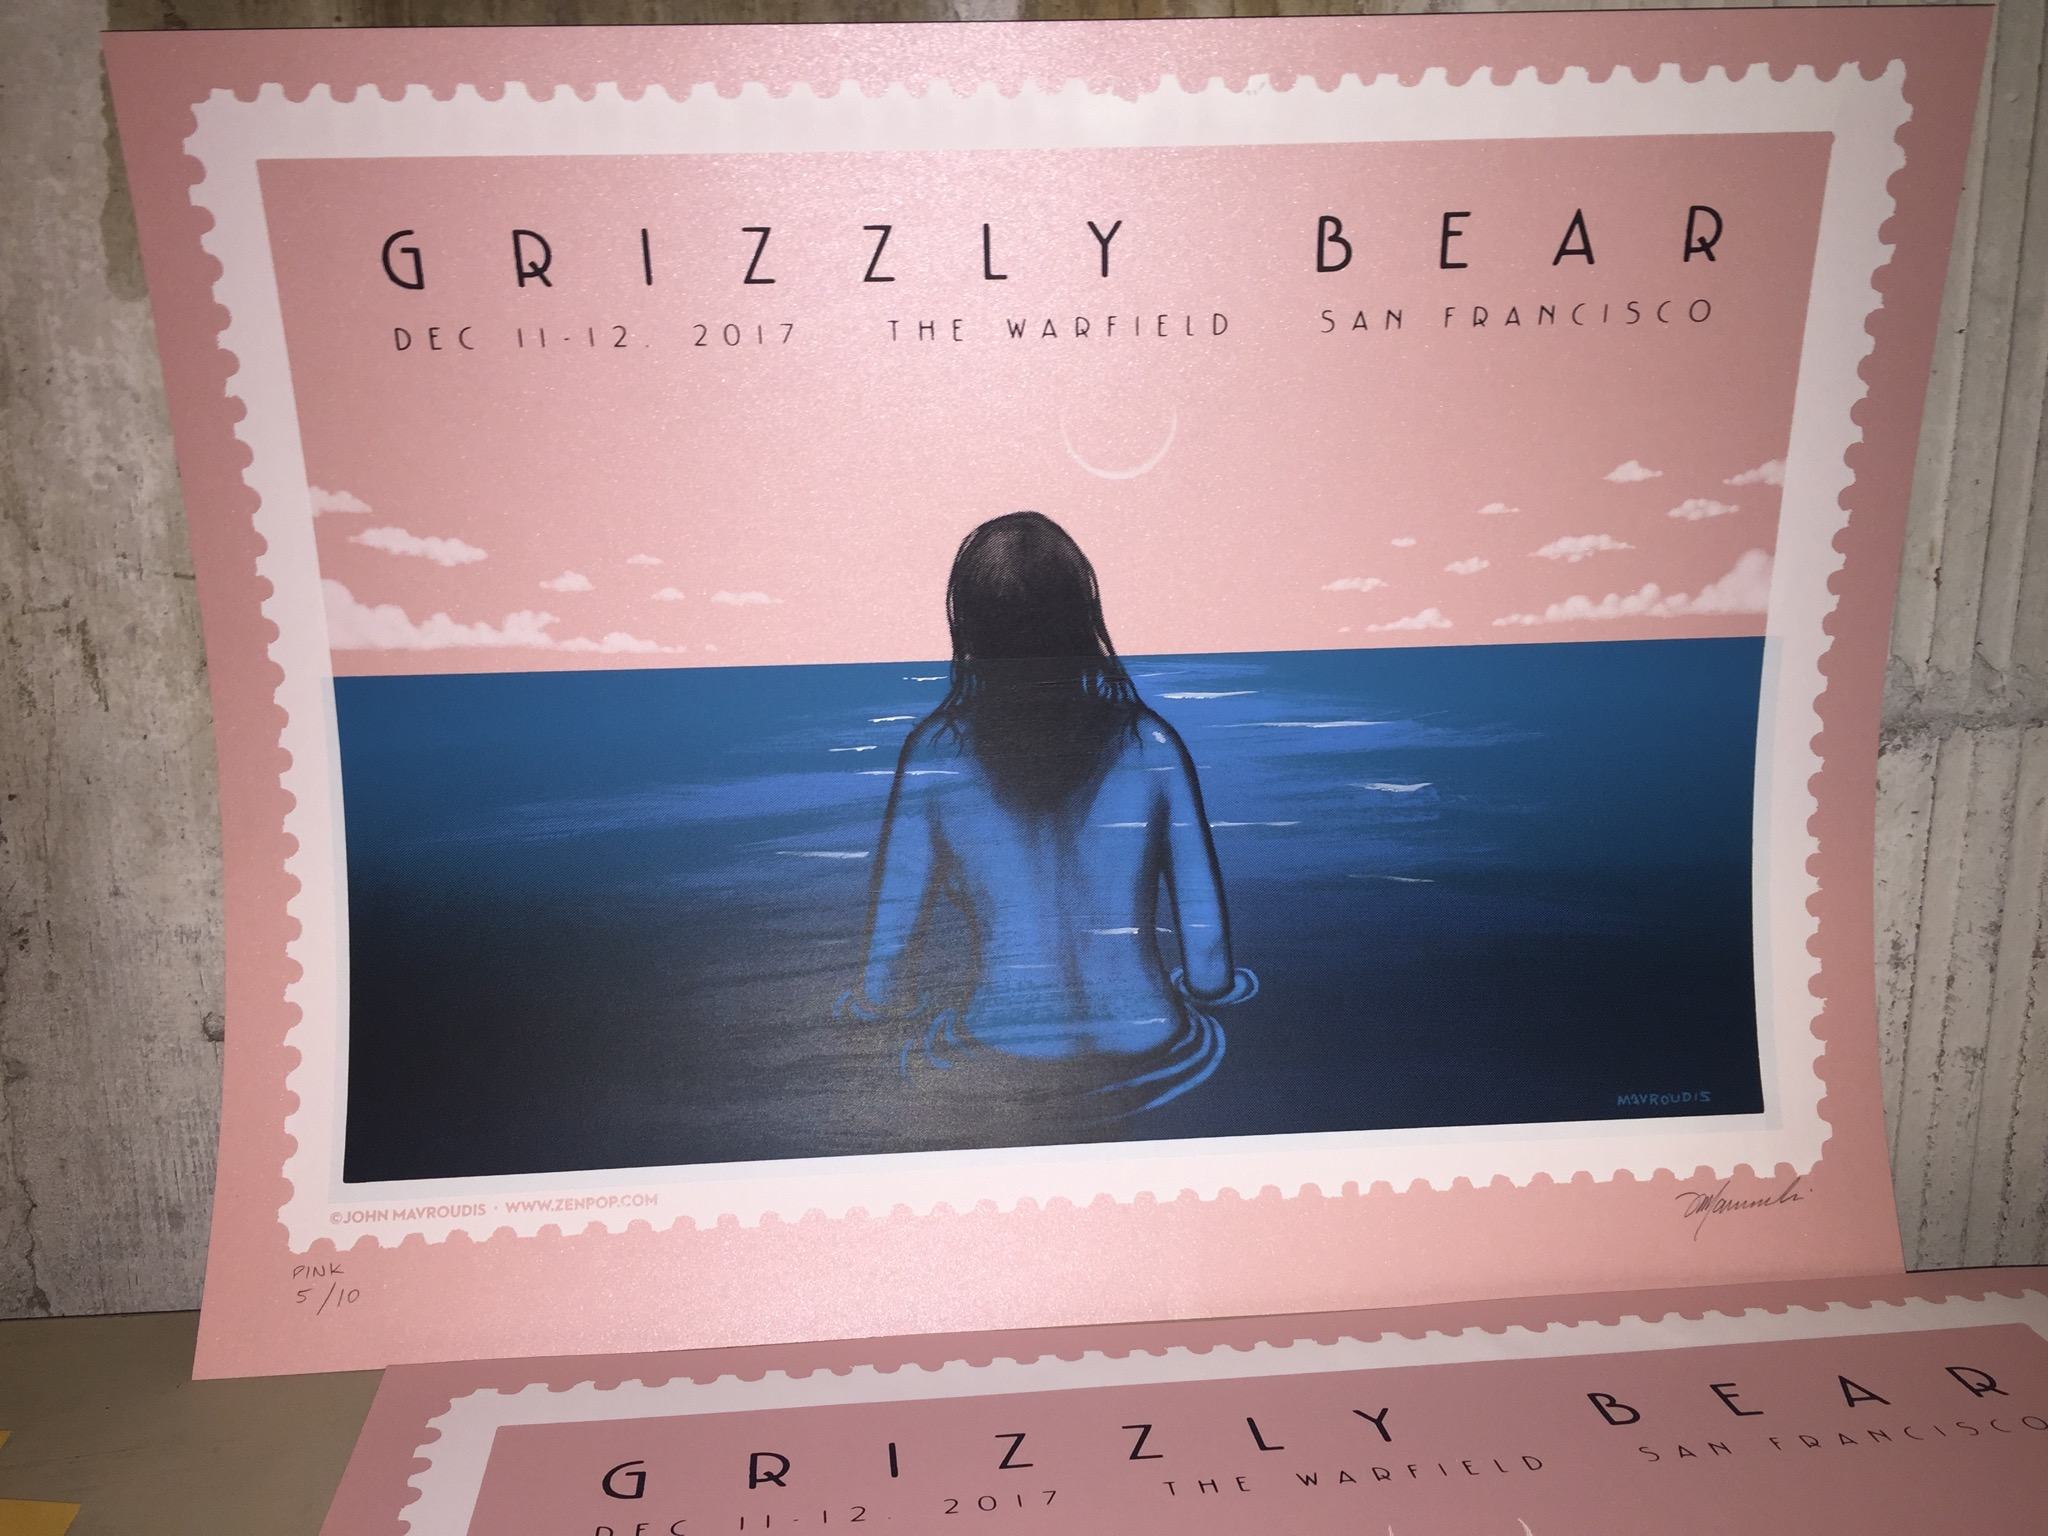 Grizzly Bear - Pink Metallic Variant